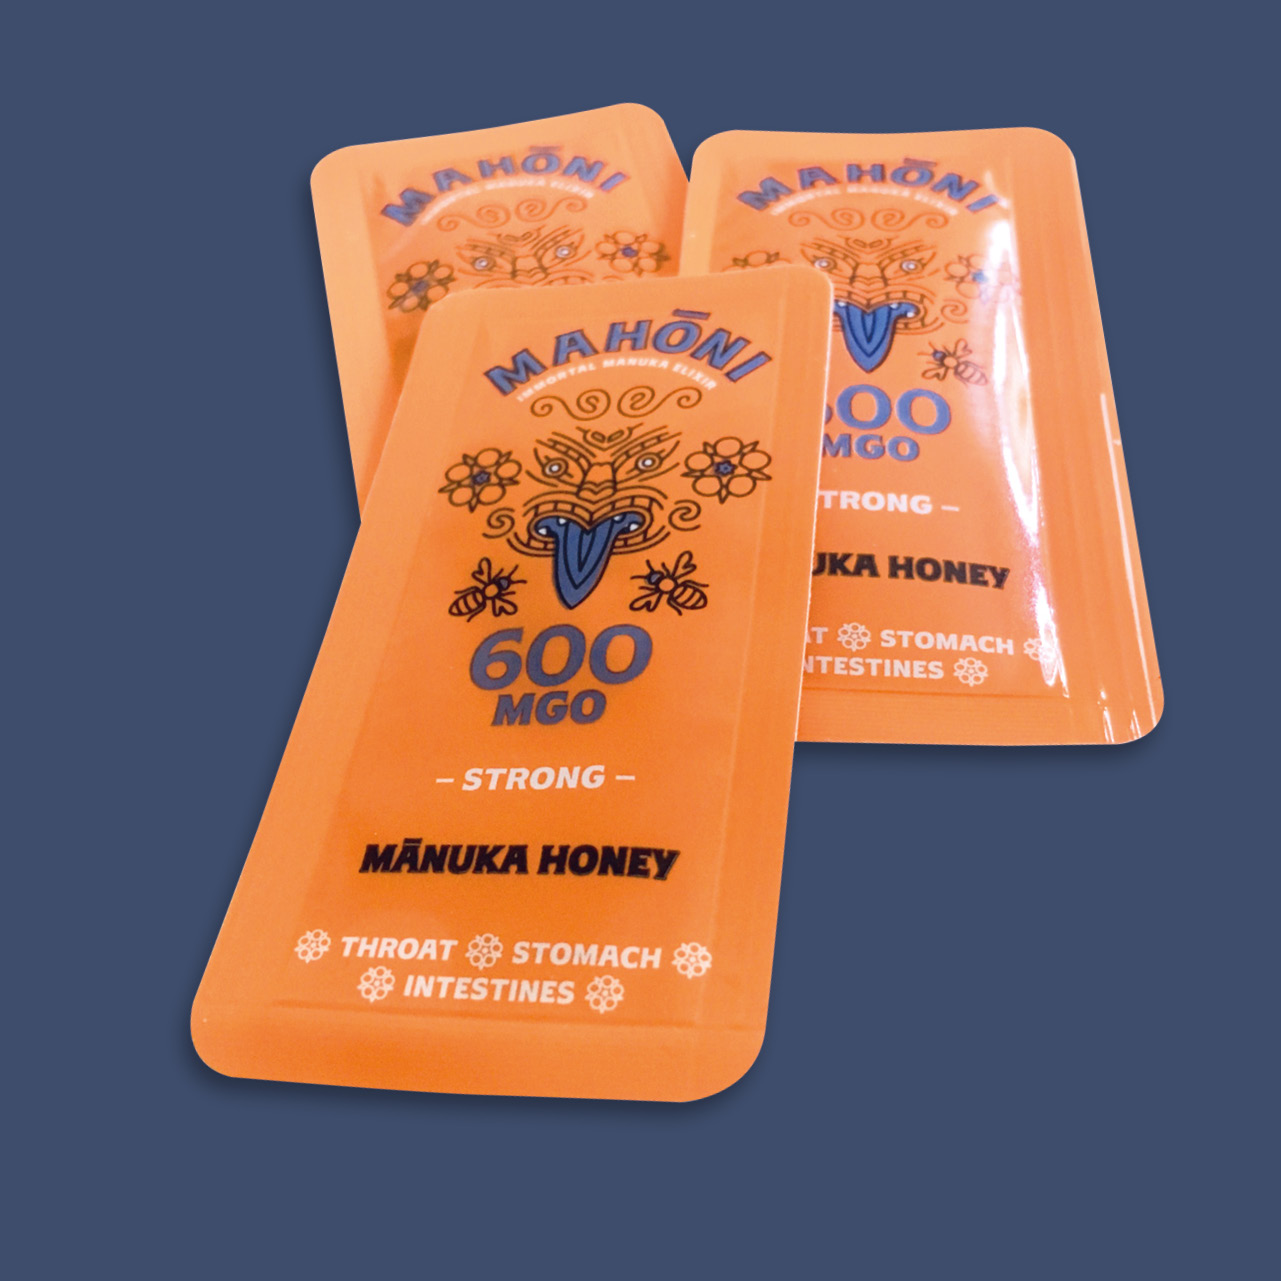 Honey Manuka Easysnap